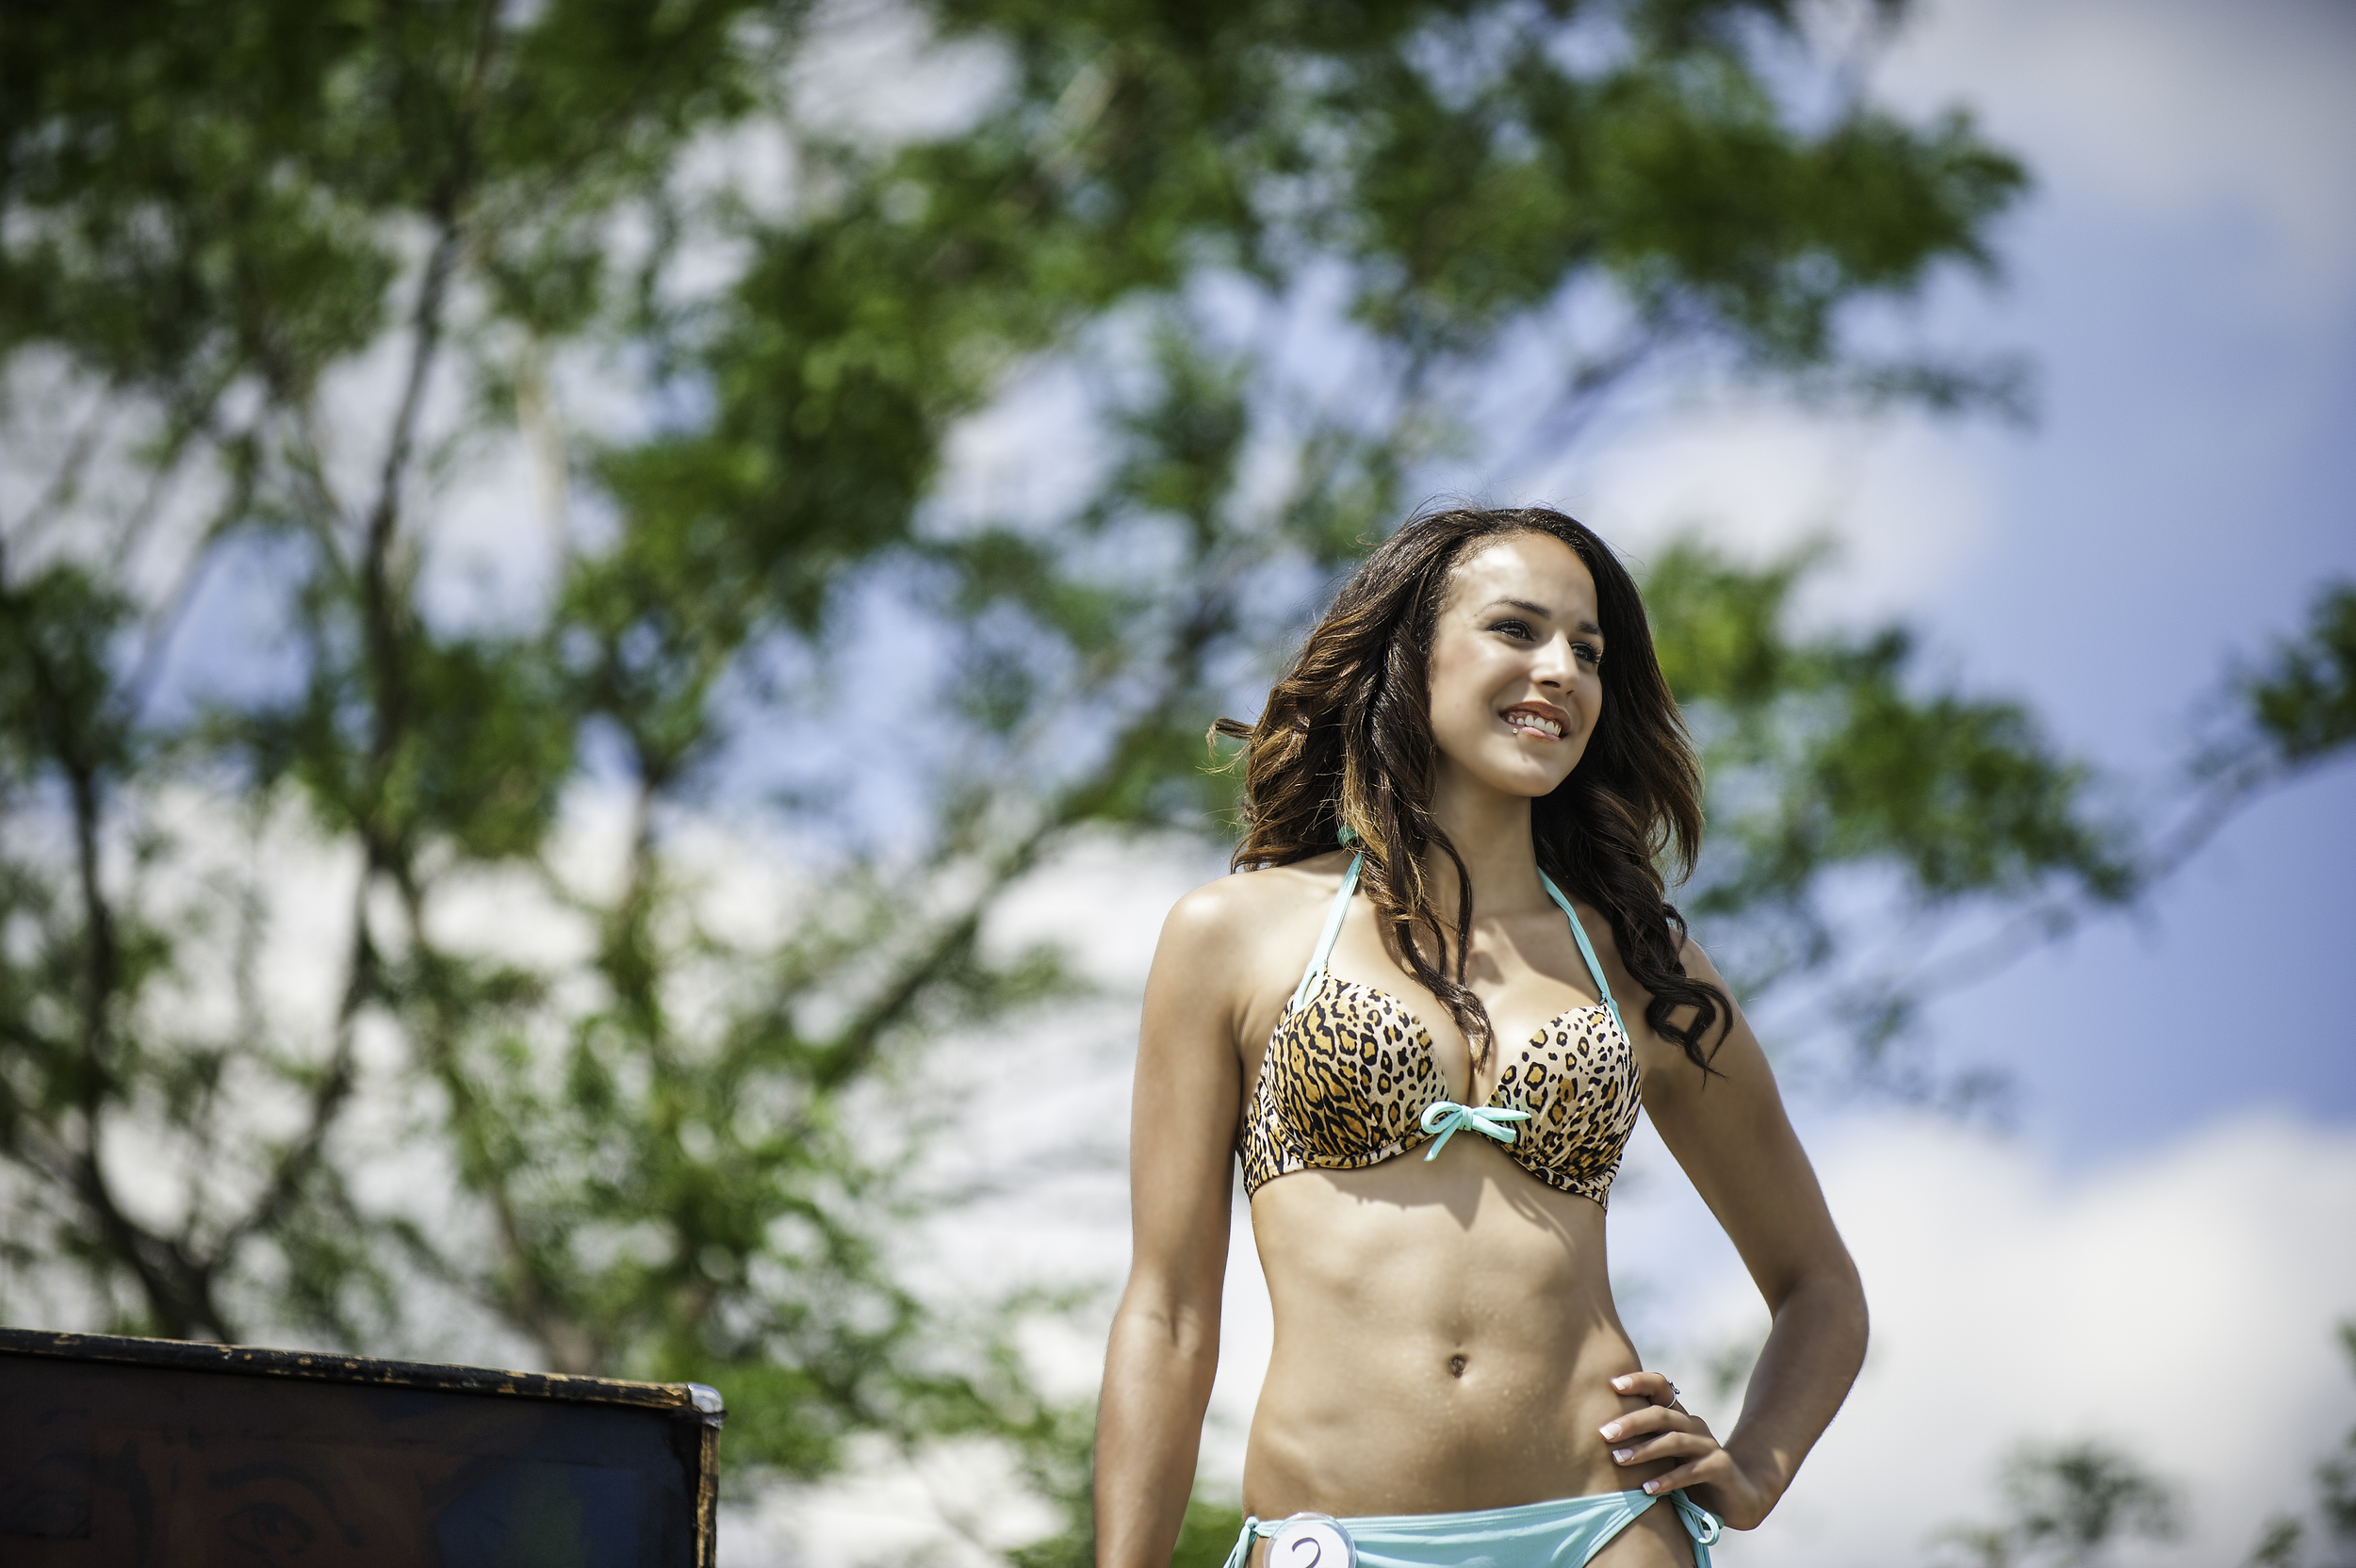 © Kevin Vyse Photography   All rights reserved 2013    THE MISS ATL BIKINI CONTEST 2013